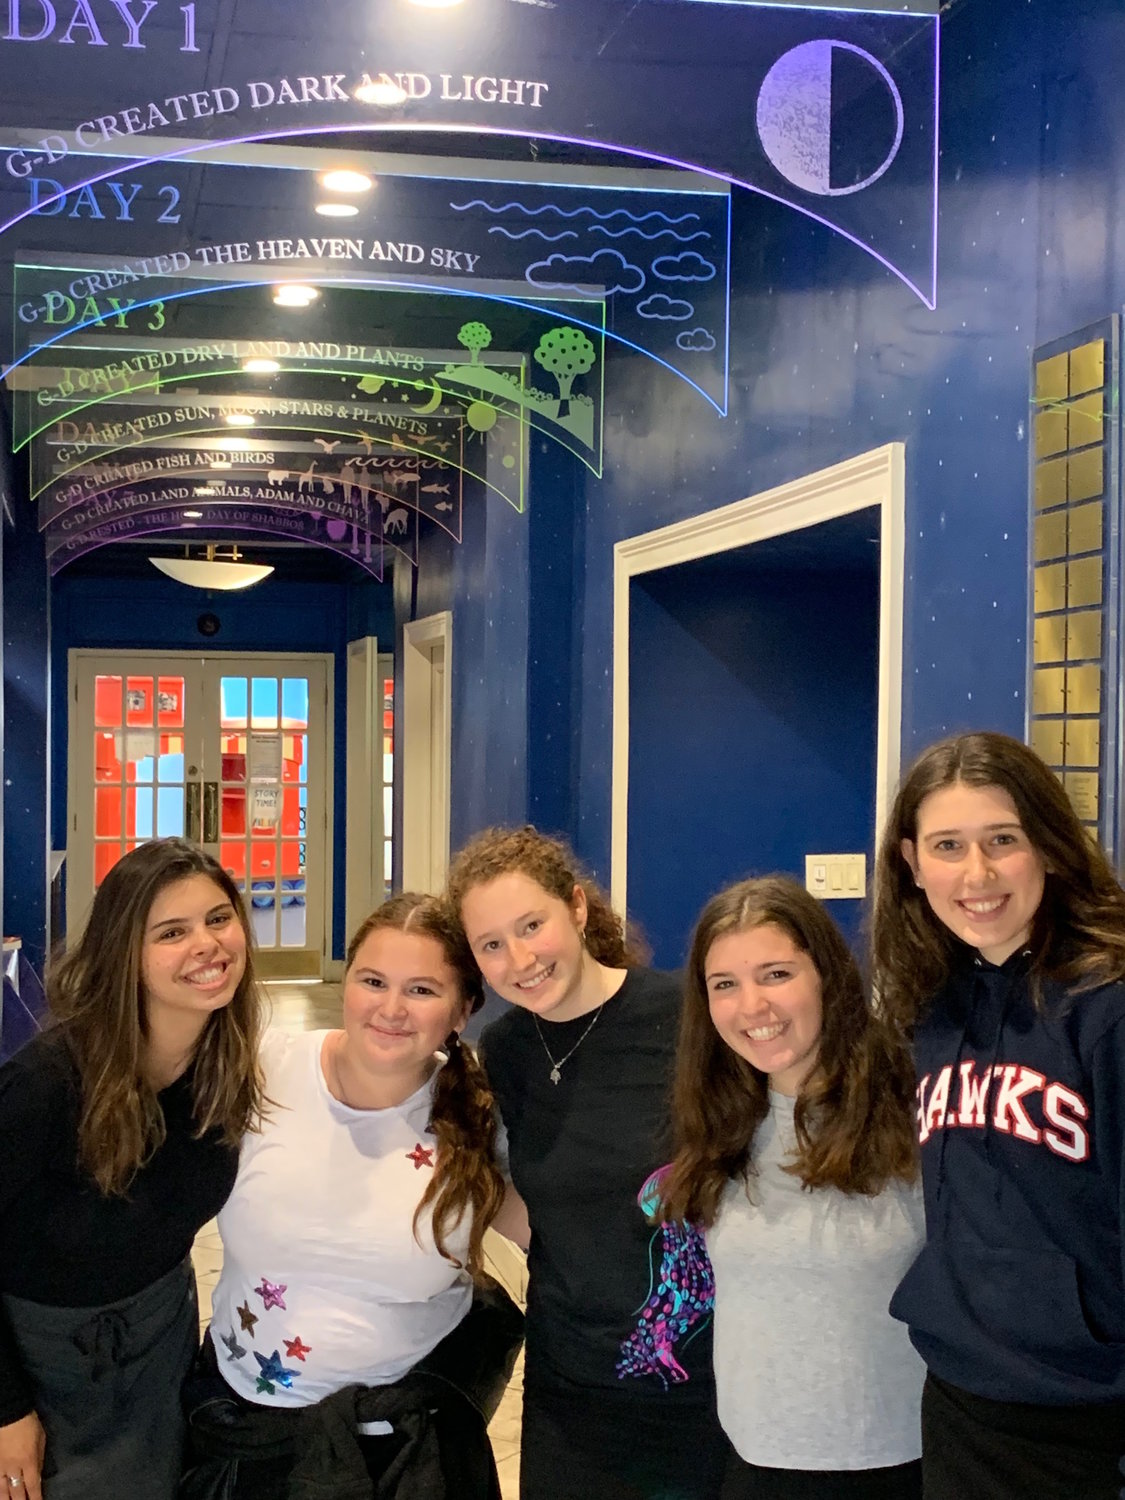 Bunch o' Bookworms, a high school student volunteer group, help's Hindi's Libraries. From left were Susanna Horowitz, Makayla Schein, Ilana Sacolick, Molly Feder and Rachel Gottesman.